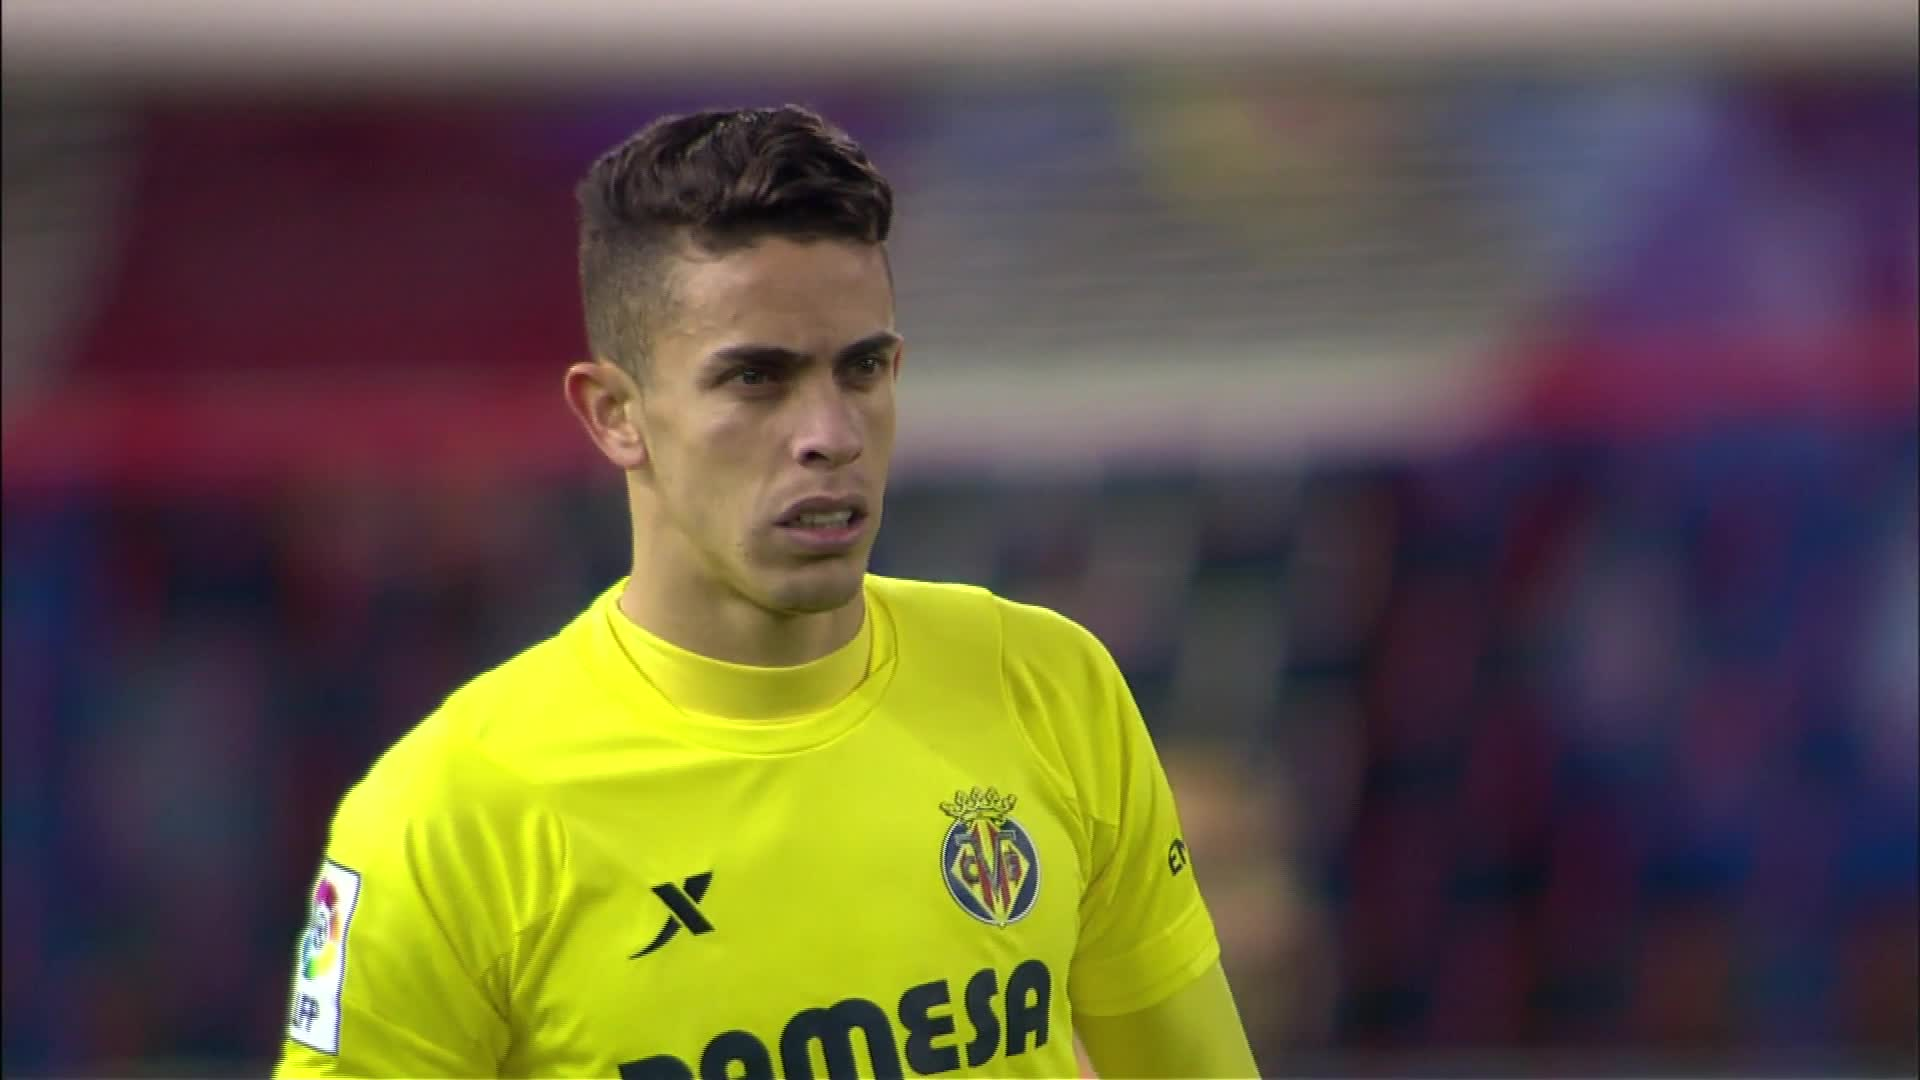 Gabriel Paulista gets work permit, to complete £13m Arsenal move